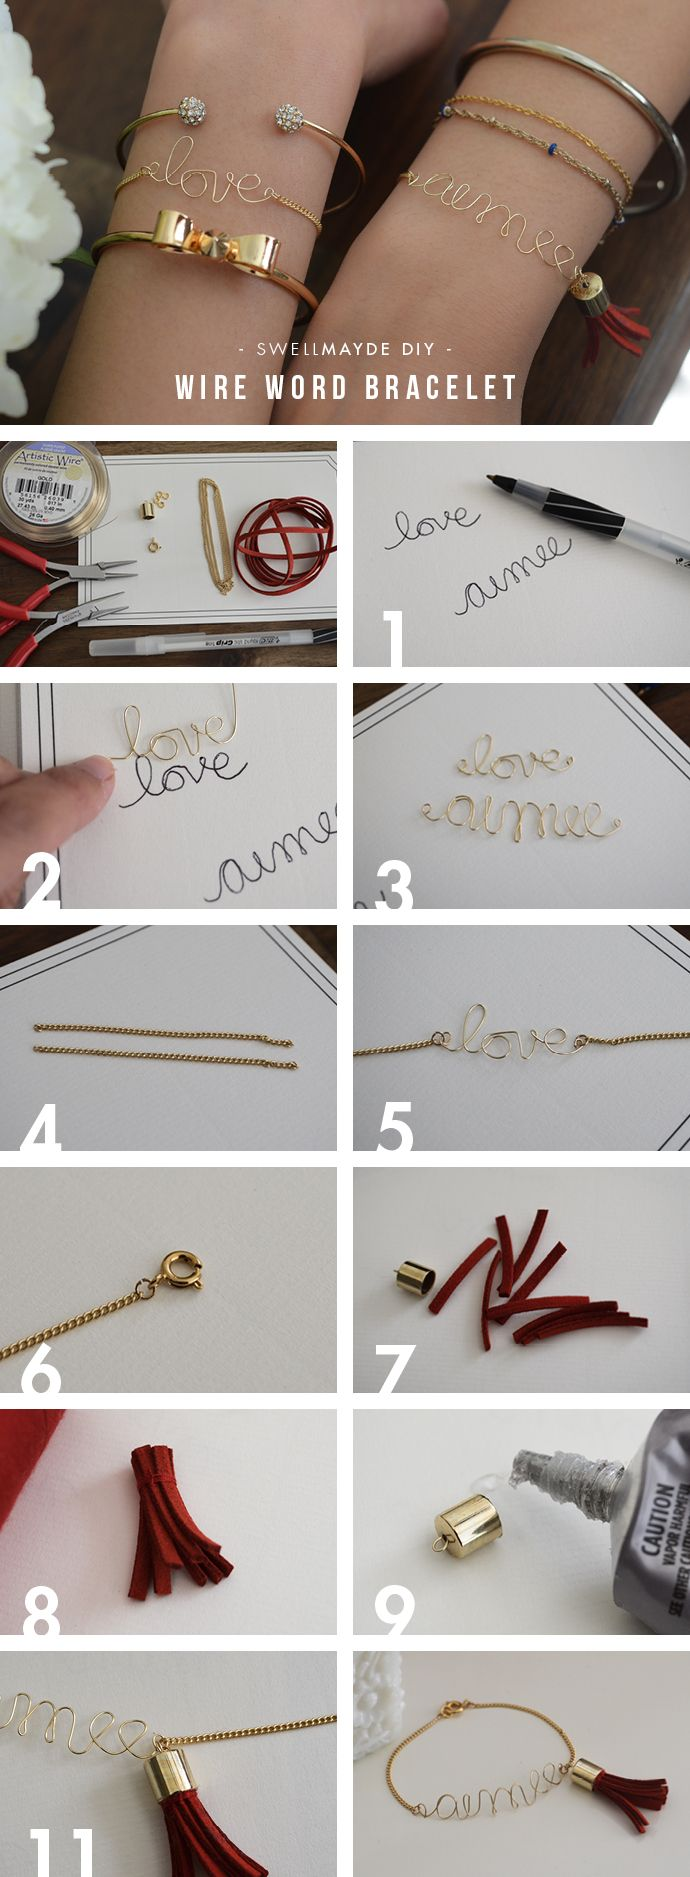 DIY | Wire Love / Name Bracelet #DIY #jewlery I'm thinking necklaces too... expecto patronum or other HP spells!!!!